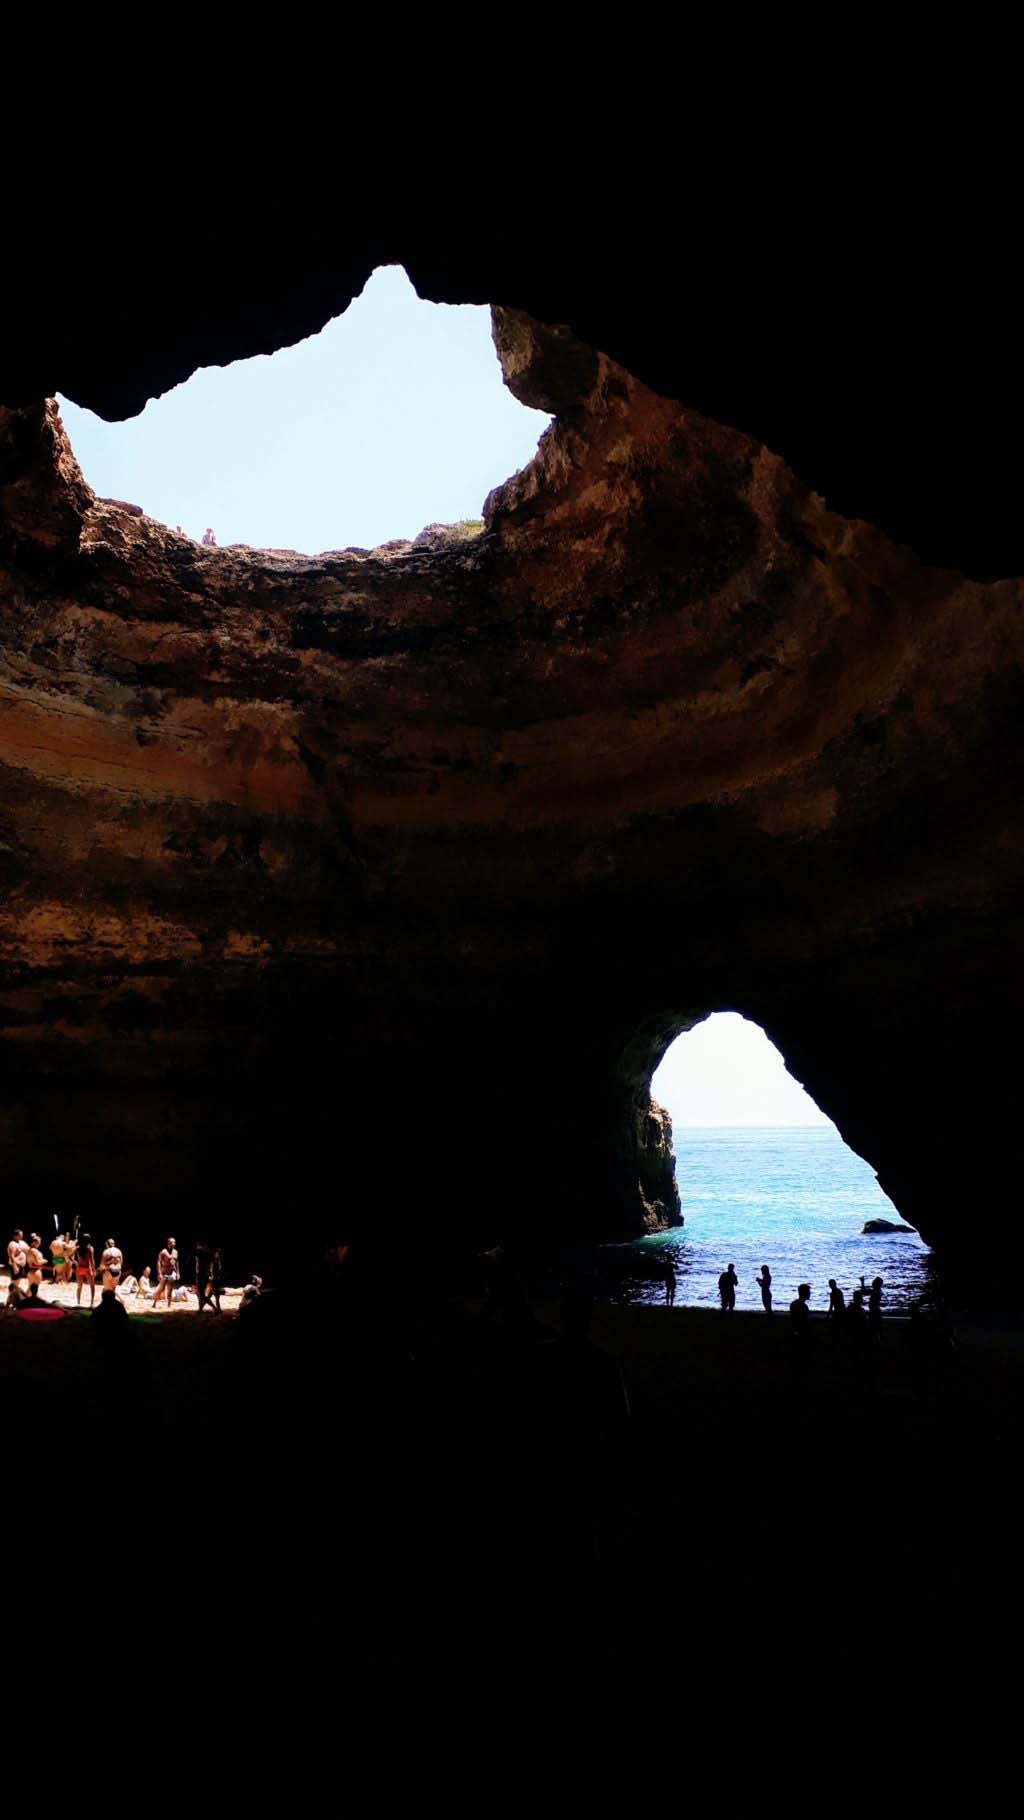 The highlight of the Algarve: the Benagil Cave